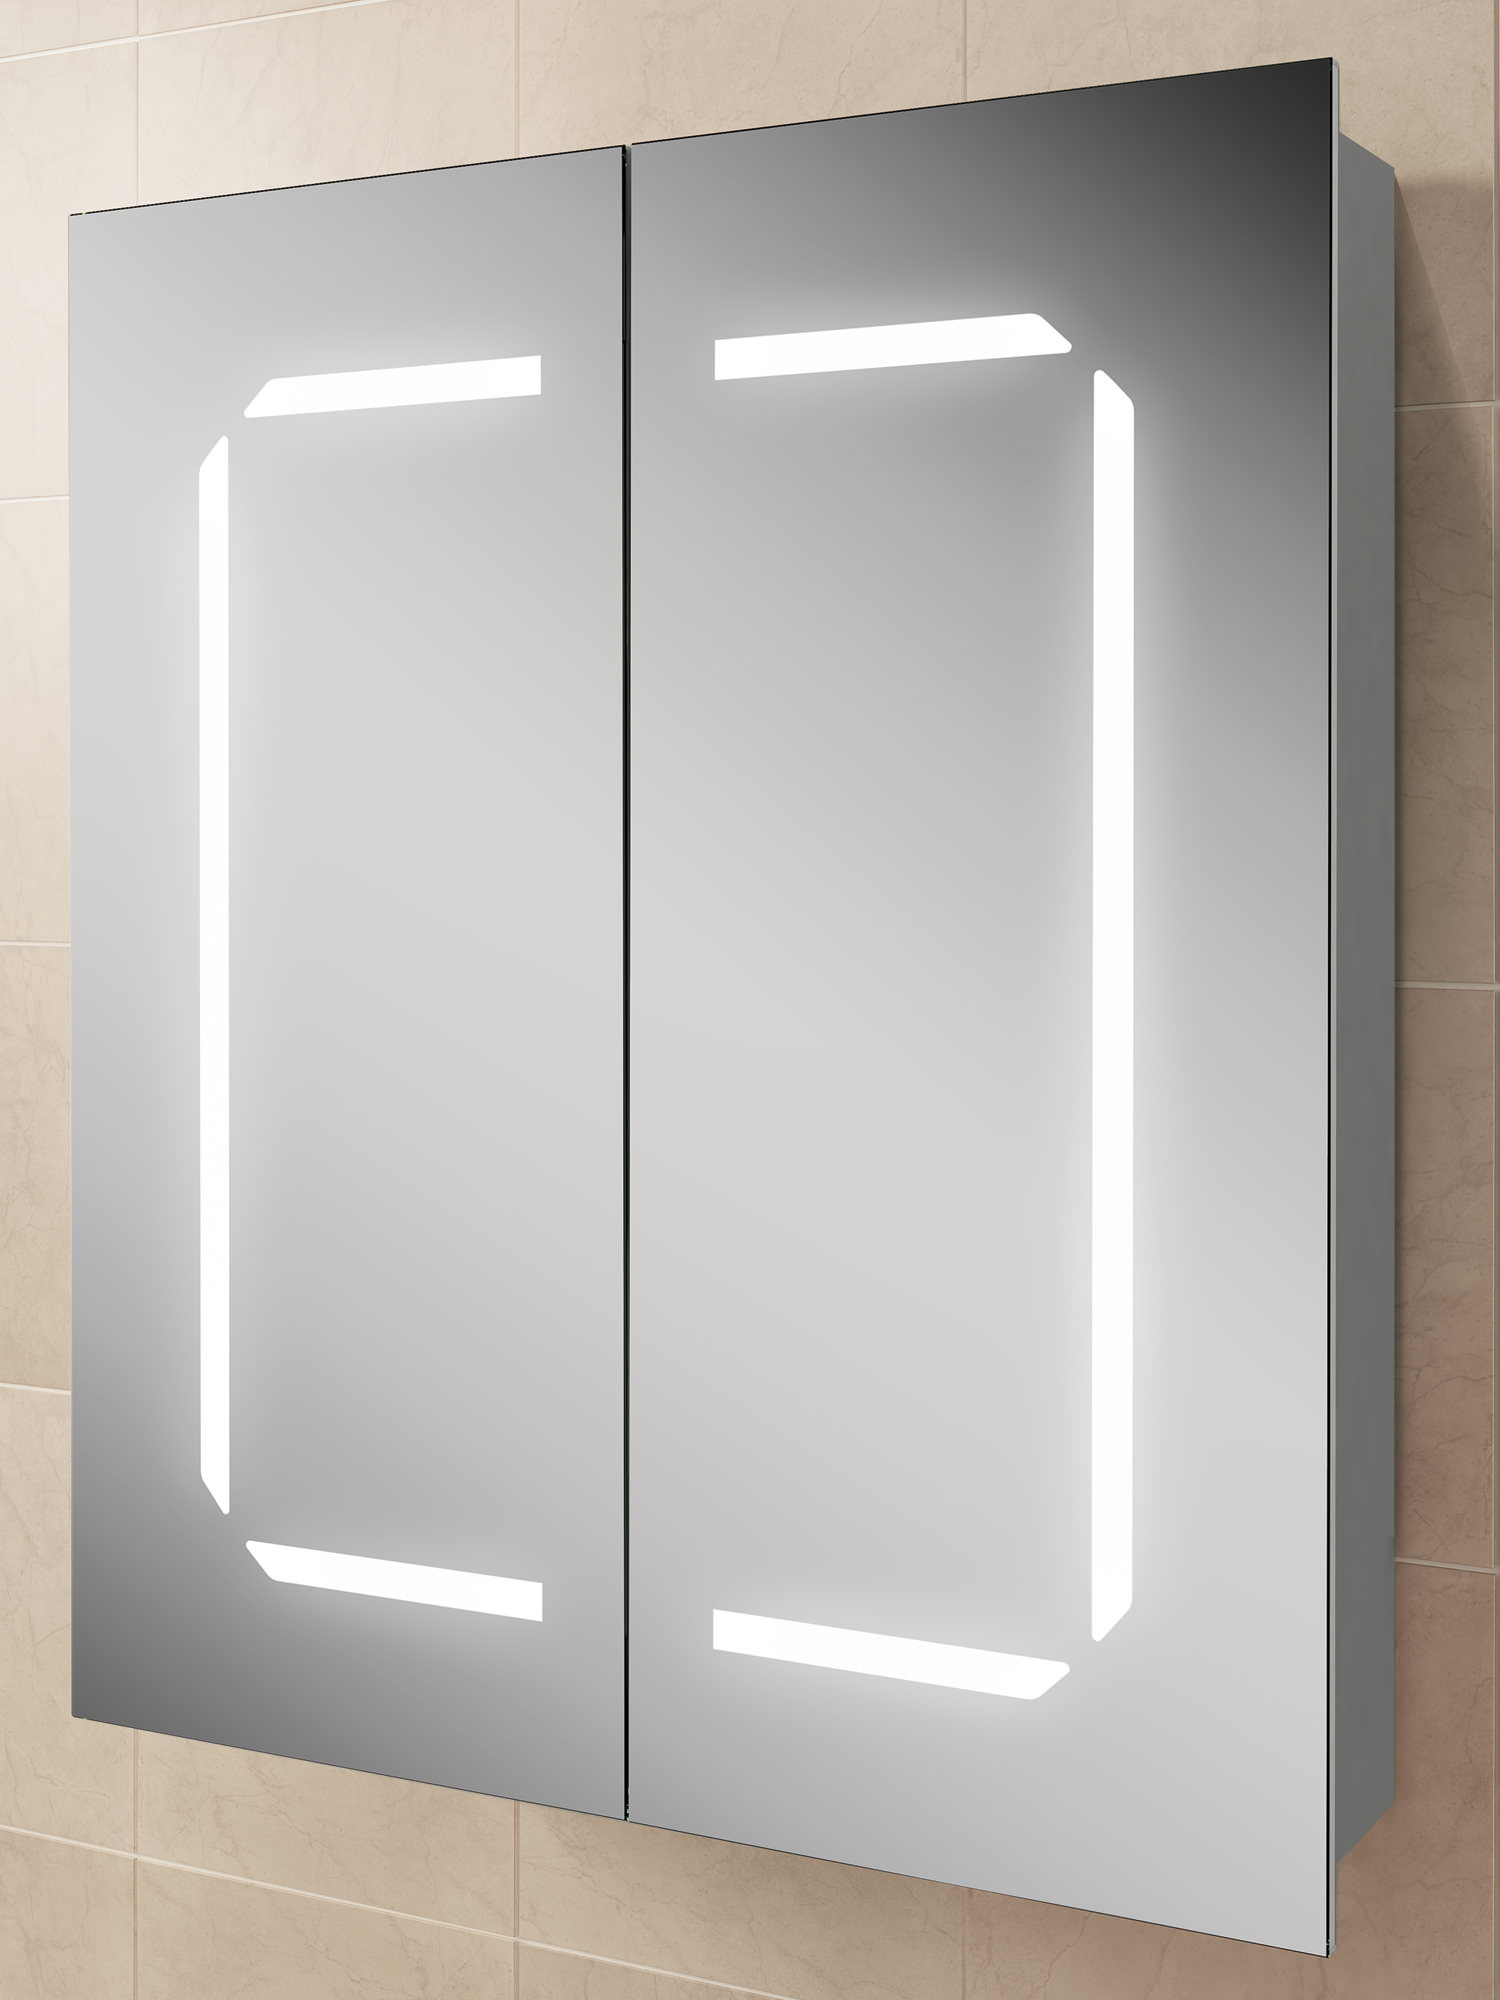 Hib zephyr 60 steam free led illuminated aluminium cabinet for Bathroom cabinets 700mm